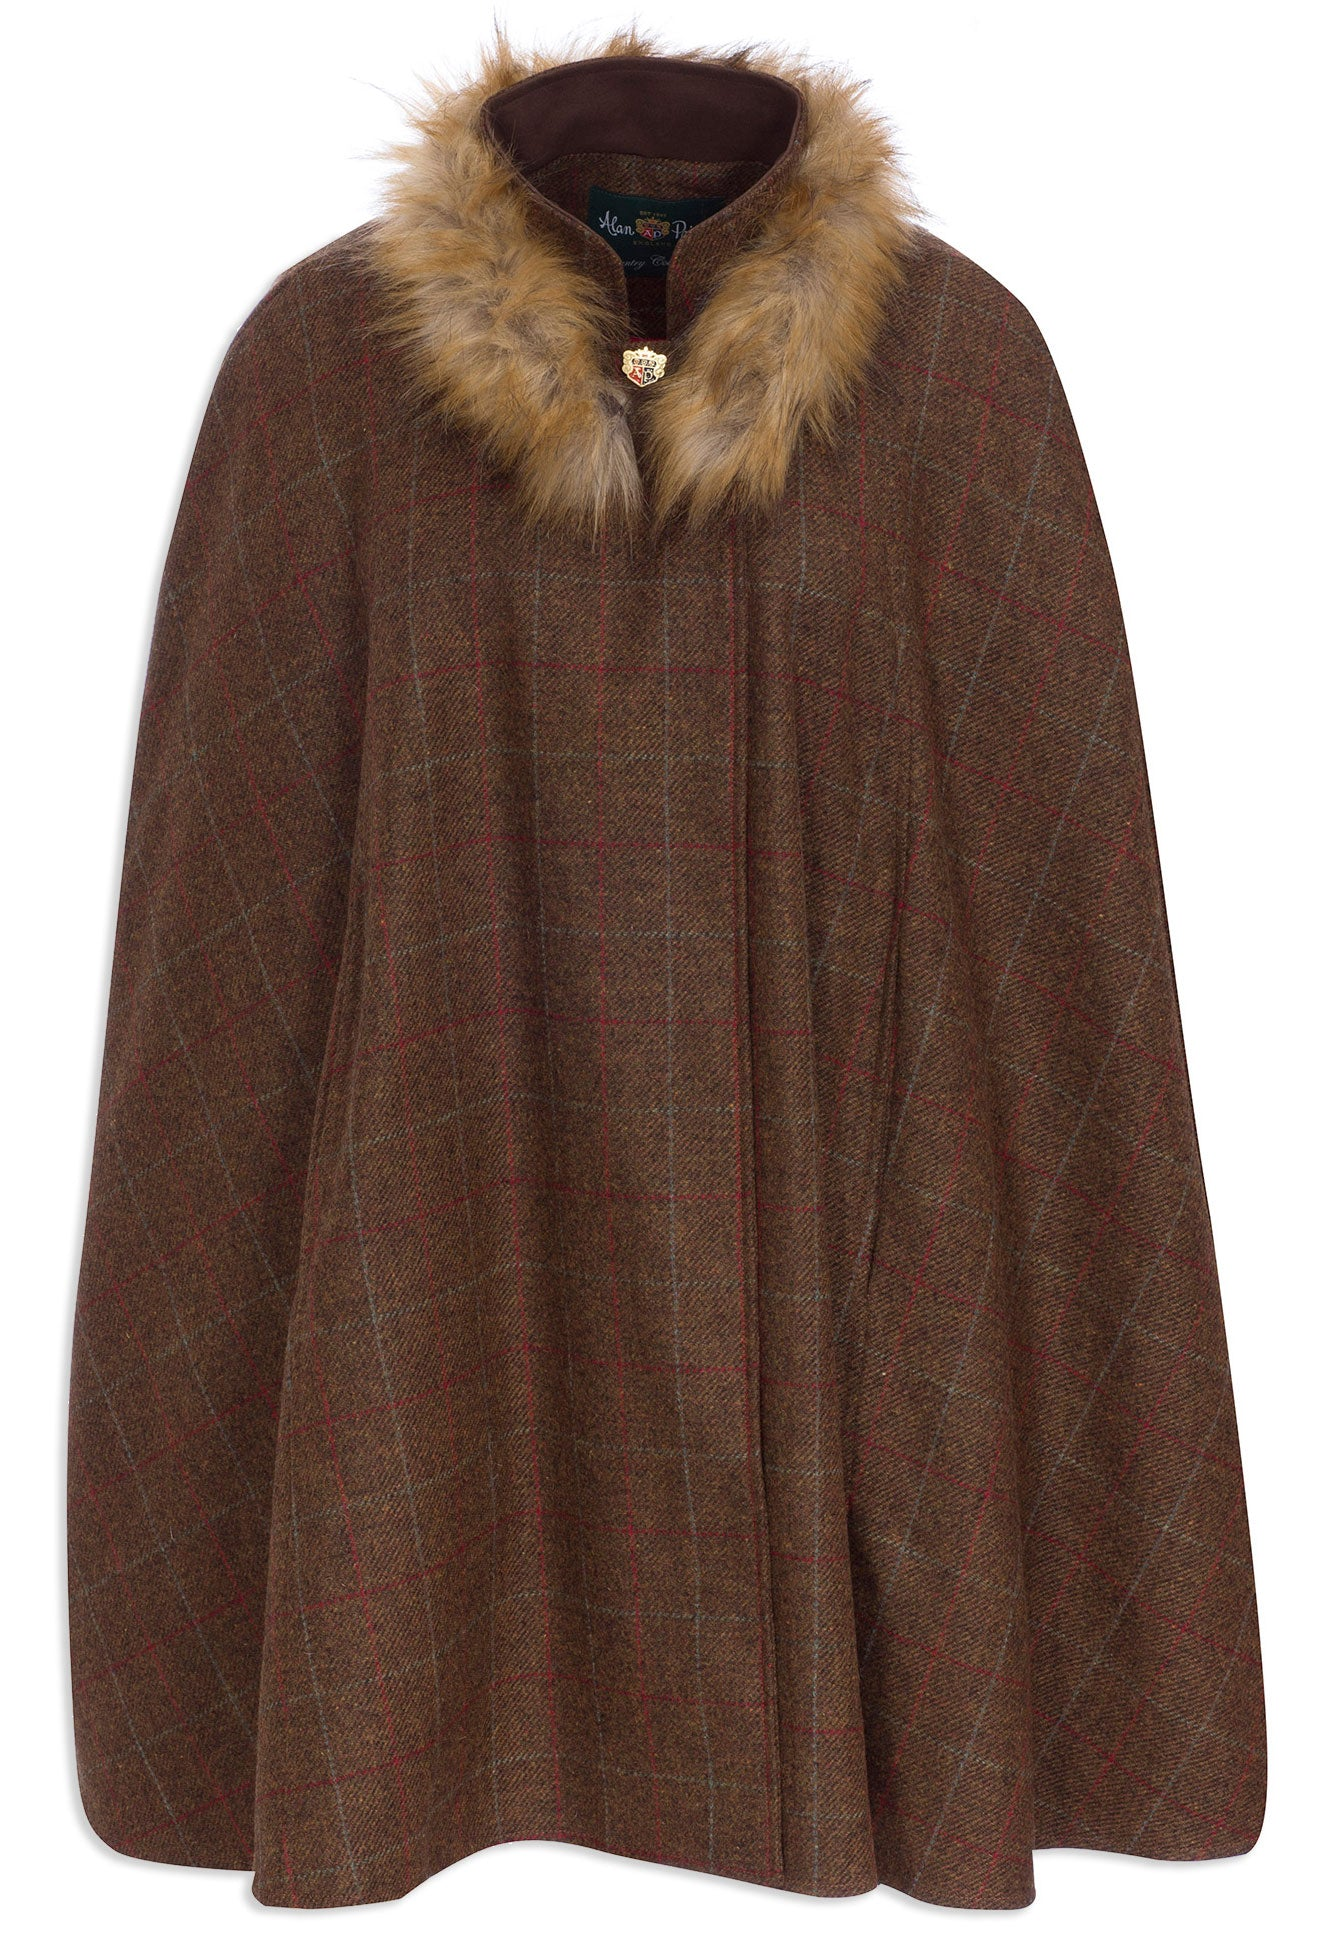 Alan Paine Surrey Tweed Cape | Hazel